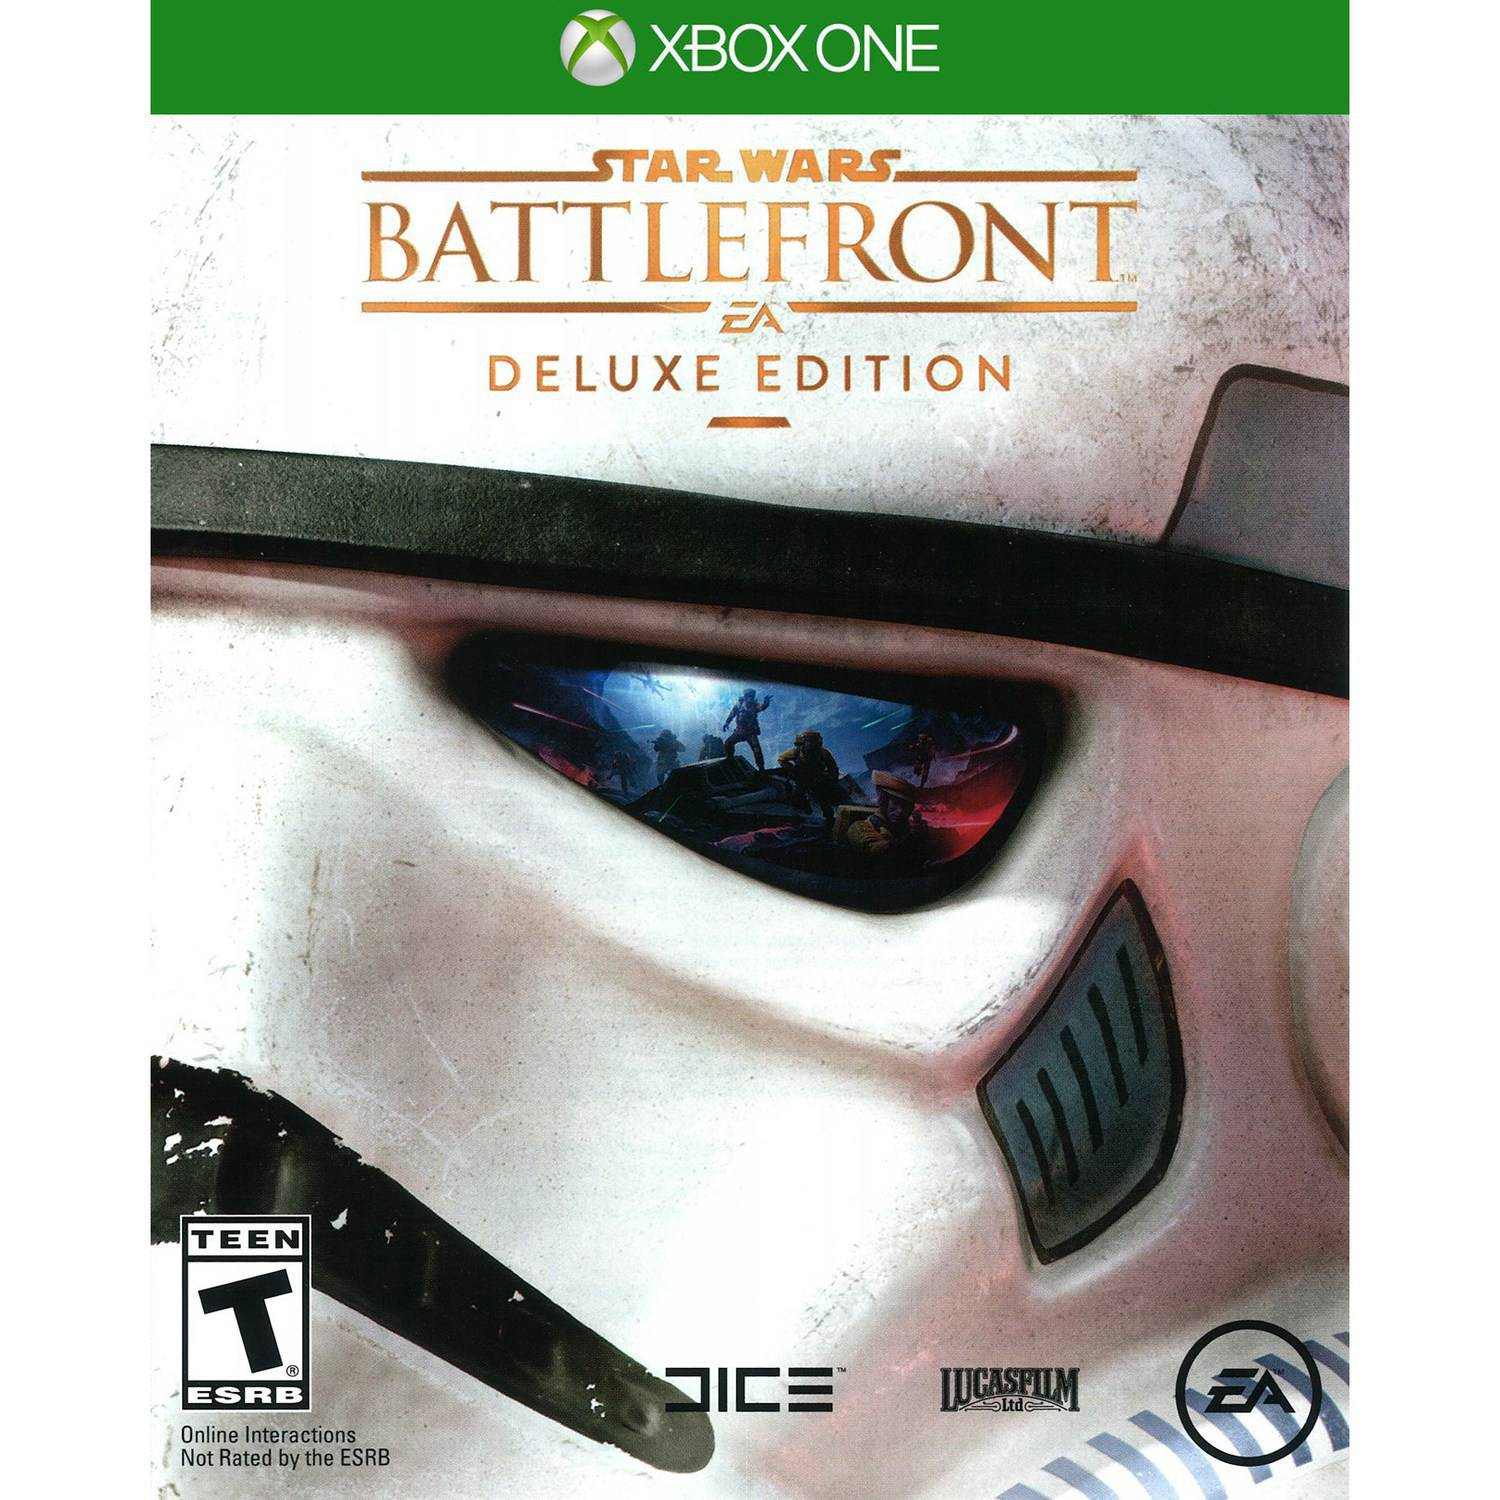 Star Wars Battlefront Deluxe Edition (Xbox One)